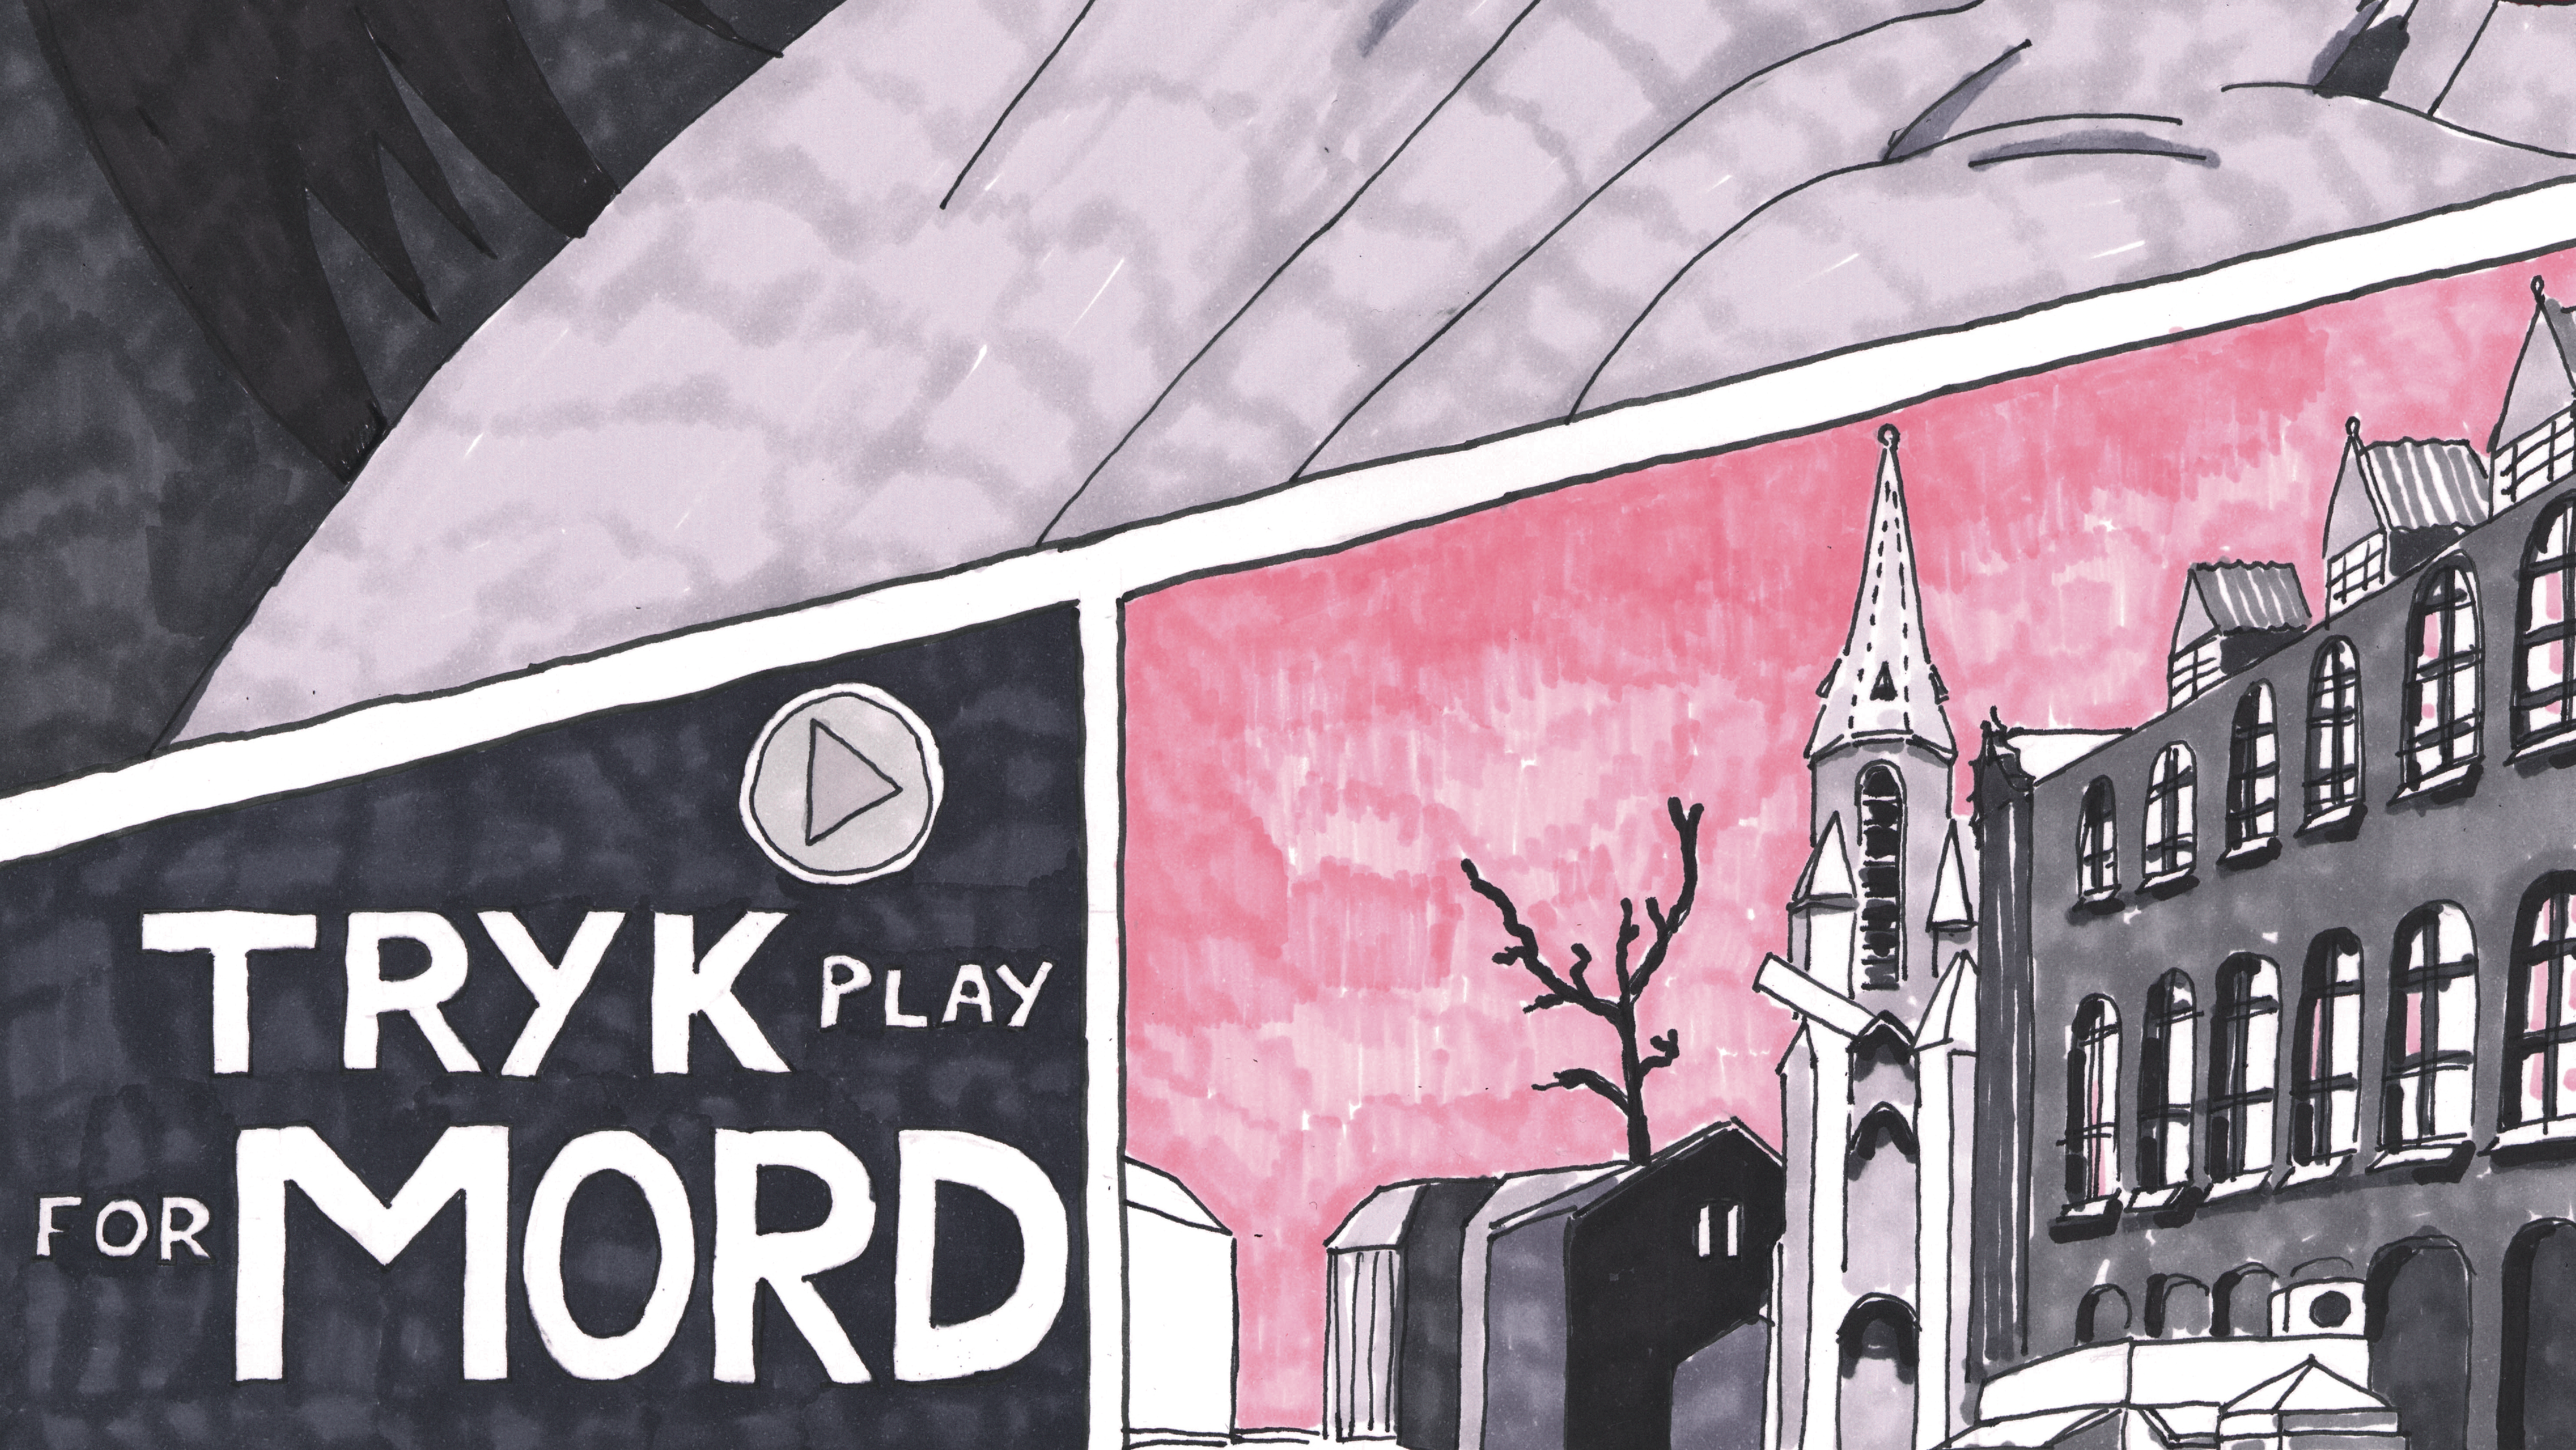 Tryk play for mord 5:5 | special-radio | DR